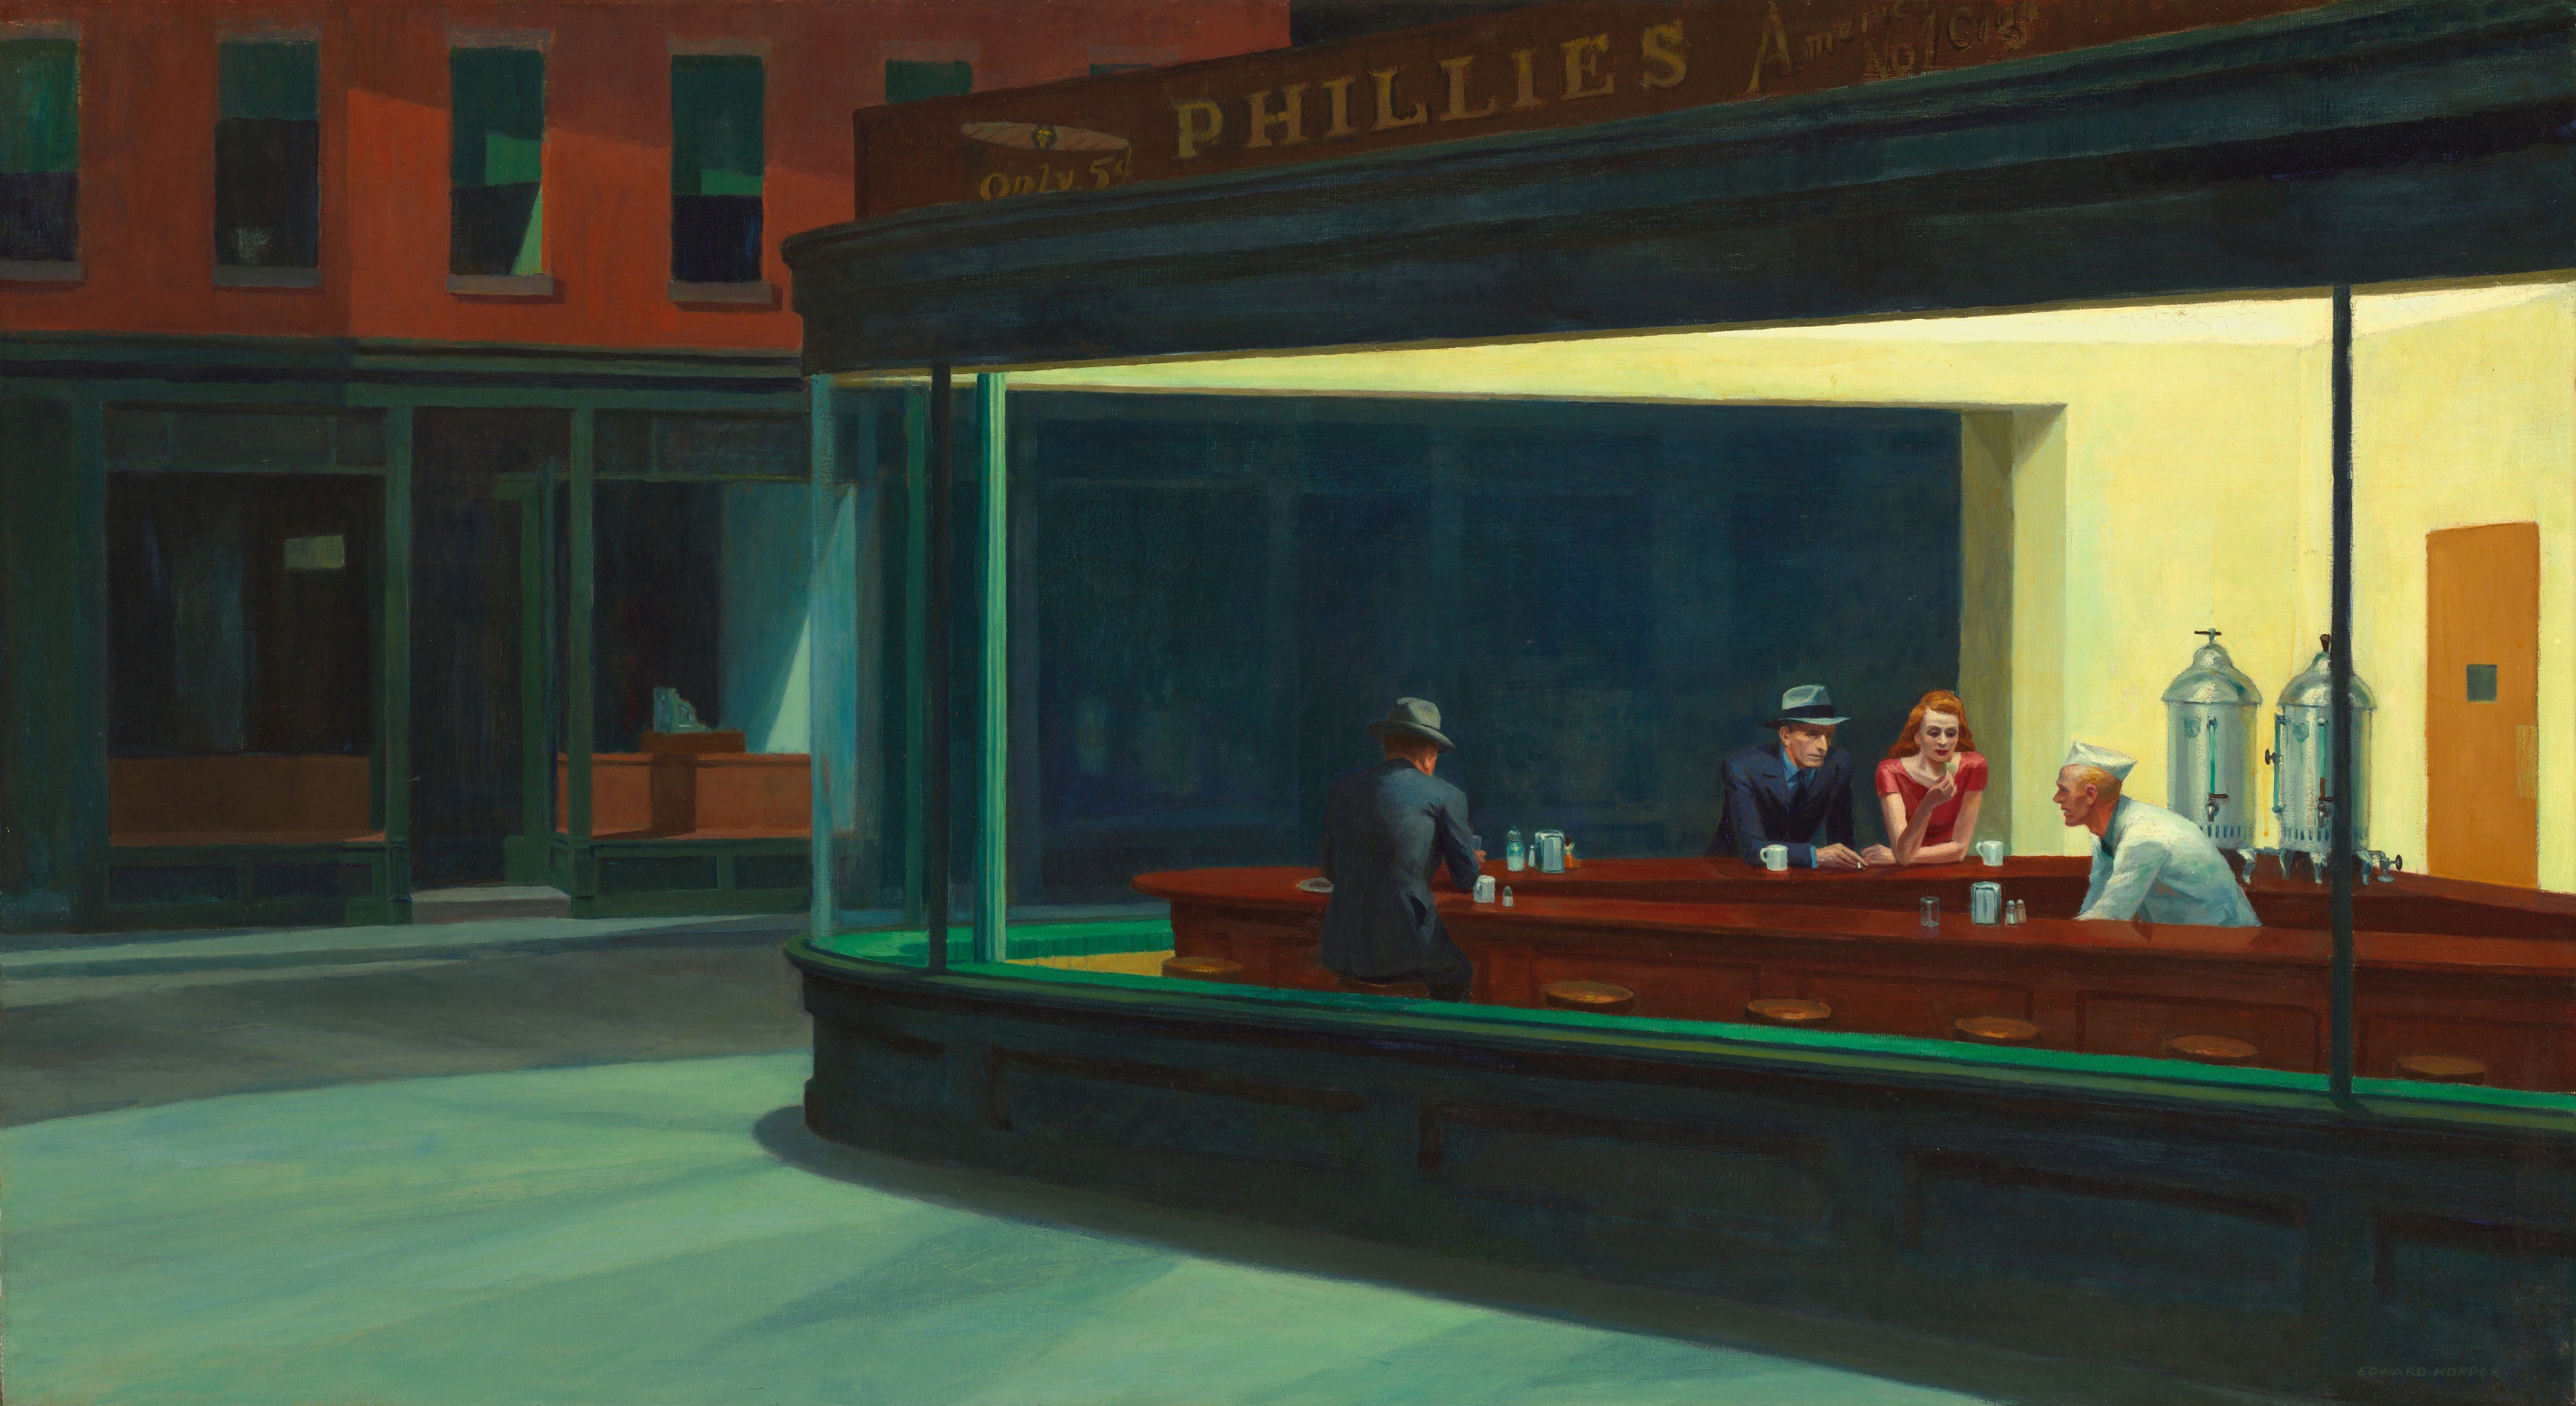 Nighthawks - A Painting That Makes a Pretty Good wallpaper